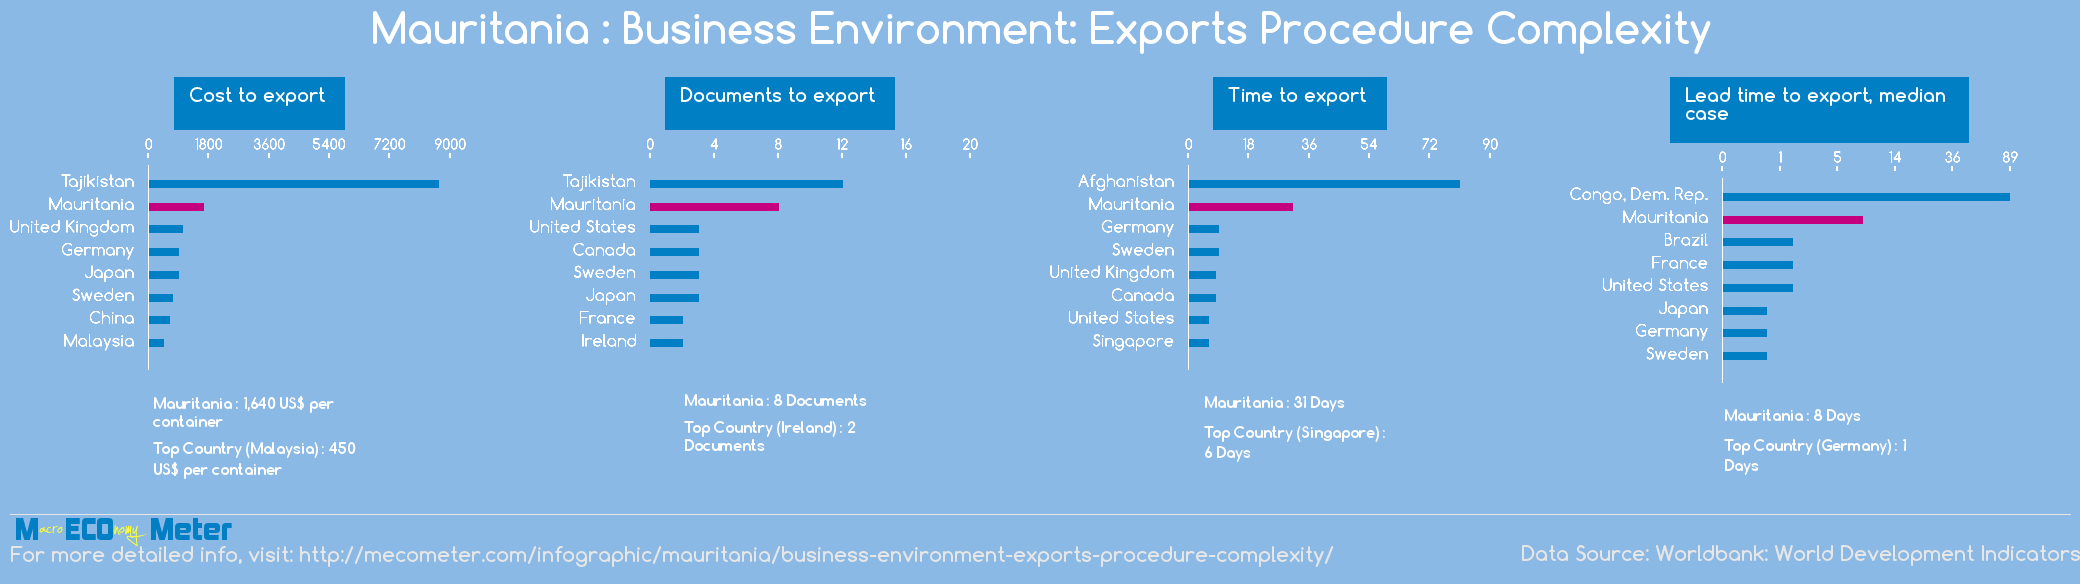 Mauritania : Business Environment: Exports Procedure Complexity